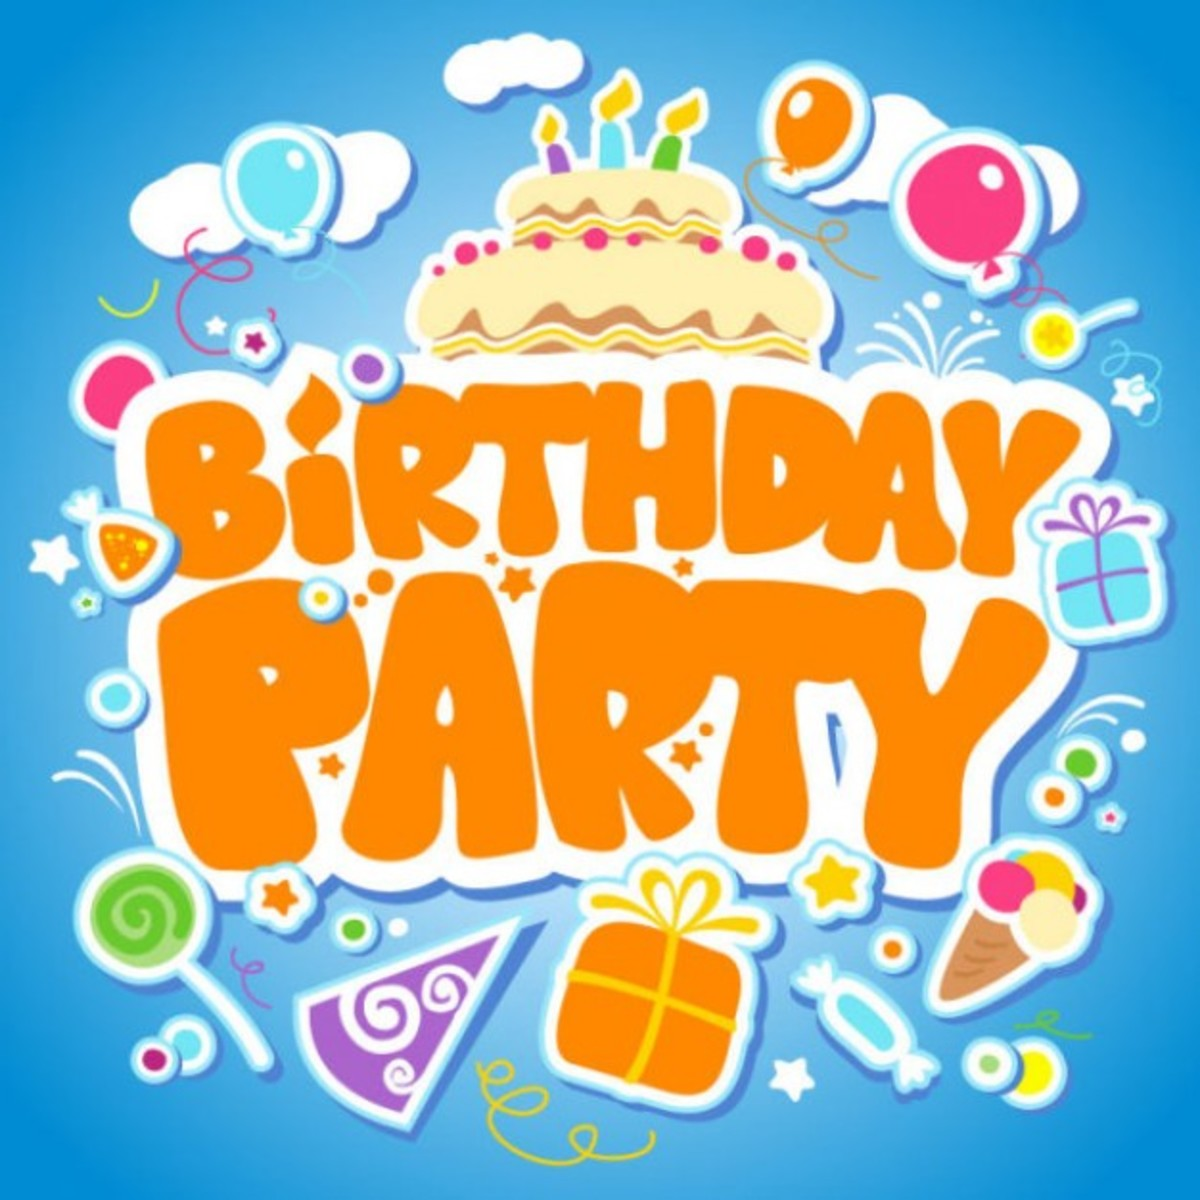 'Birthday Party' in Orange Letters with Cake, gifts, Candy and Balloons